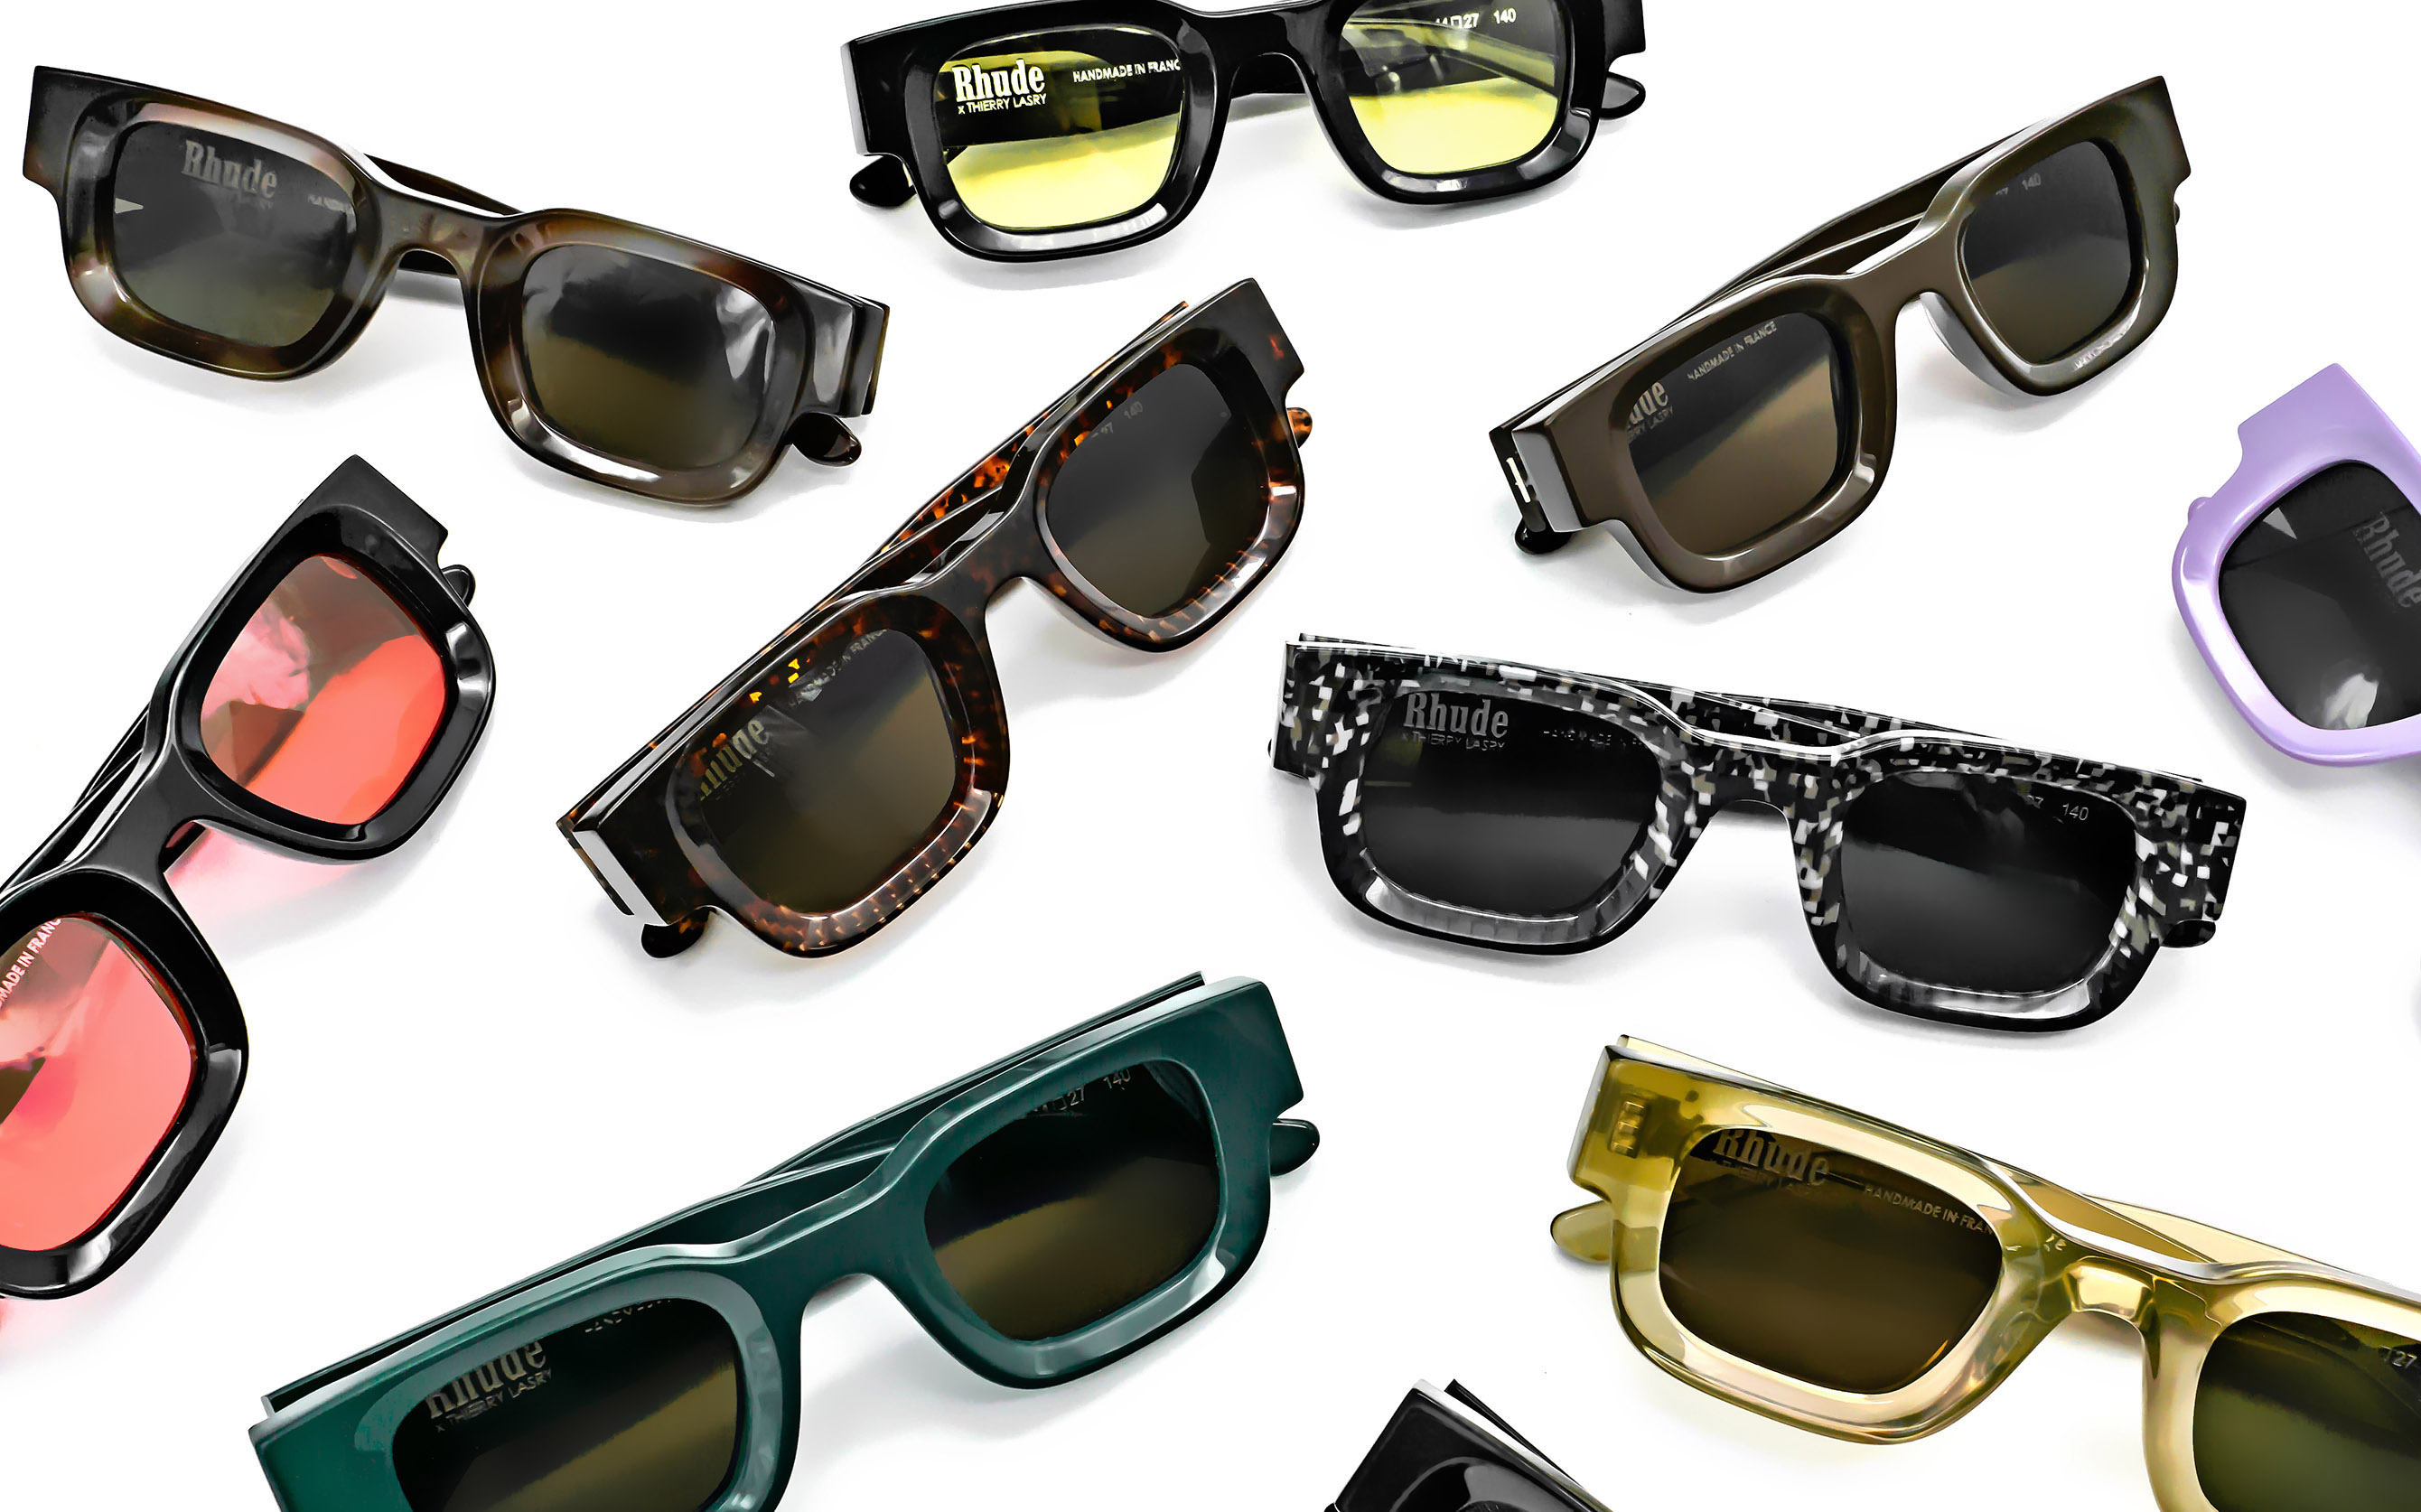 Collection Rhude X Thierry Lasry